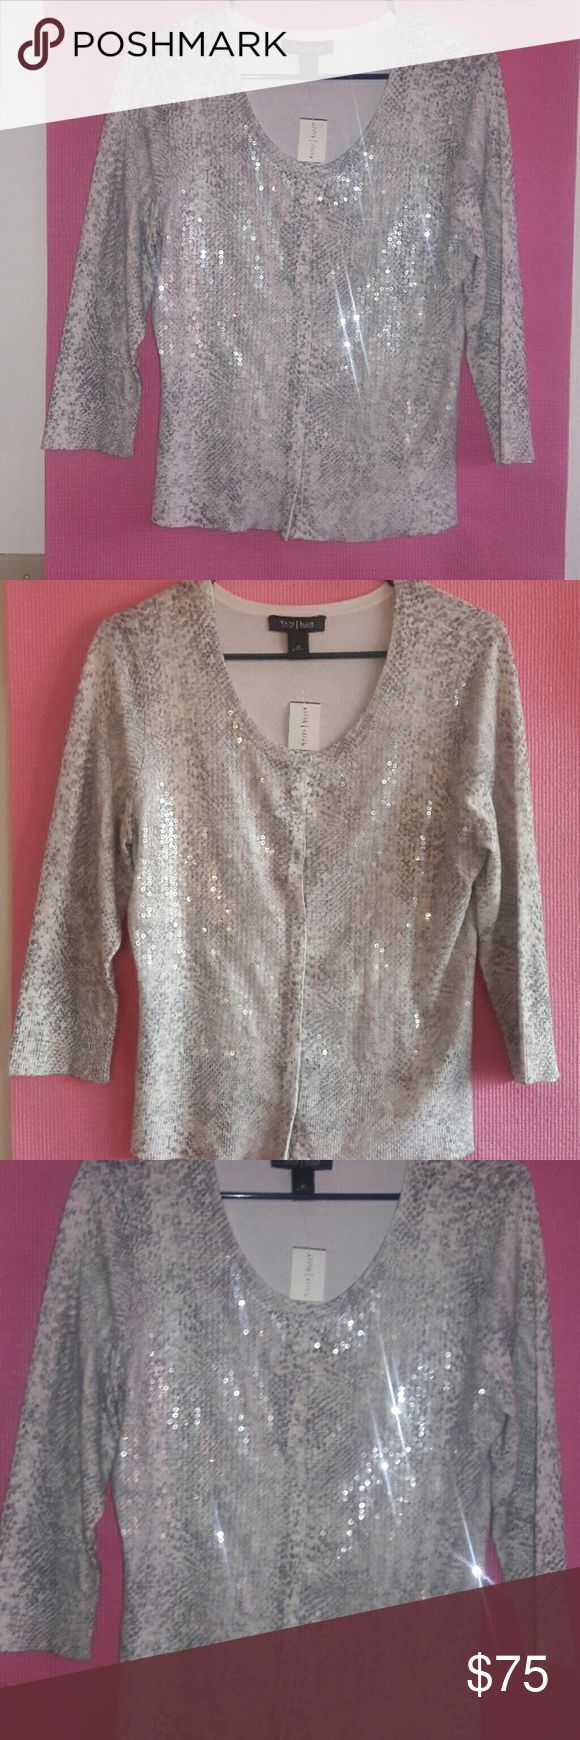 Whitehouse black market sequin cardigan size m Brand new beautiful sequin cardigan with snake print  only sequins in the front brand  new with tag 72%Rayon 28%nylon White House Black Market Sweaters Cardigans